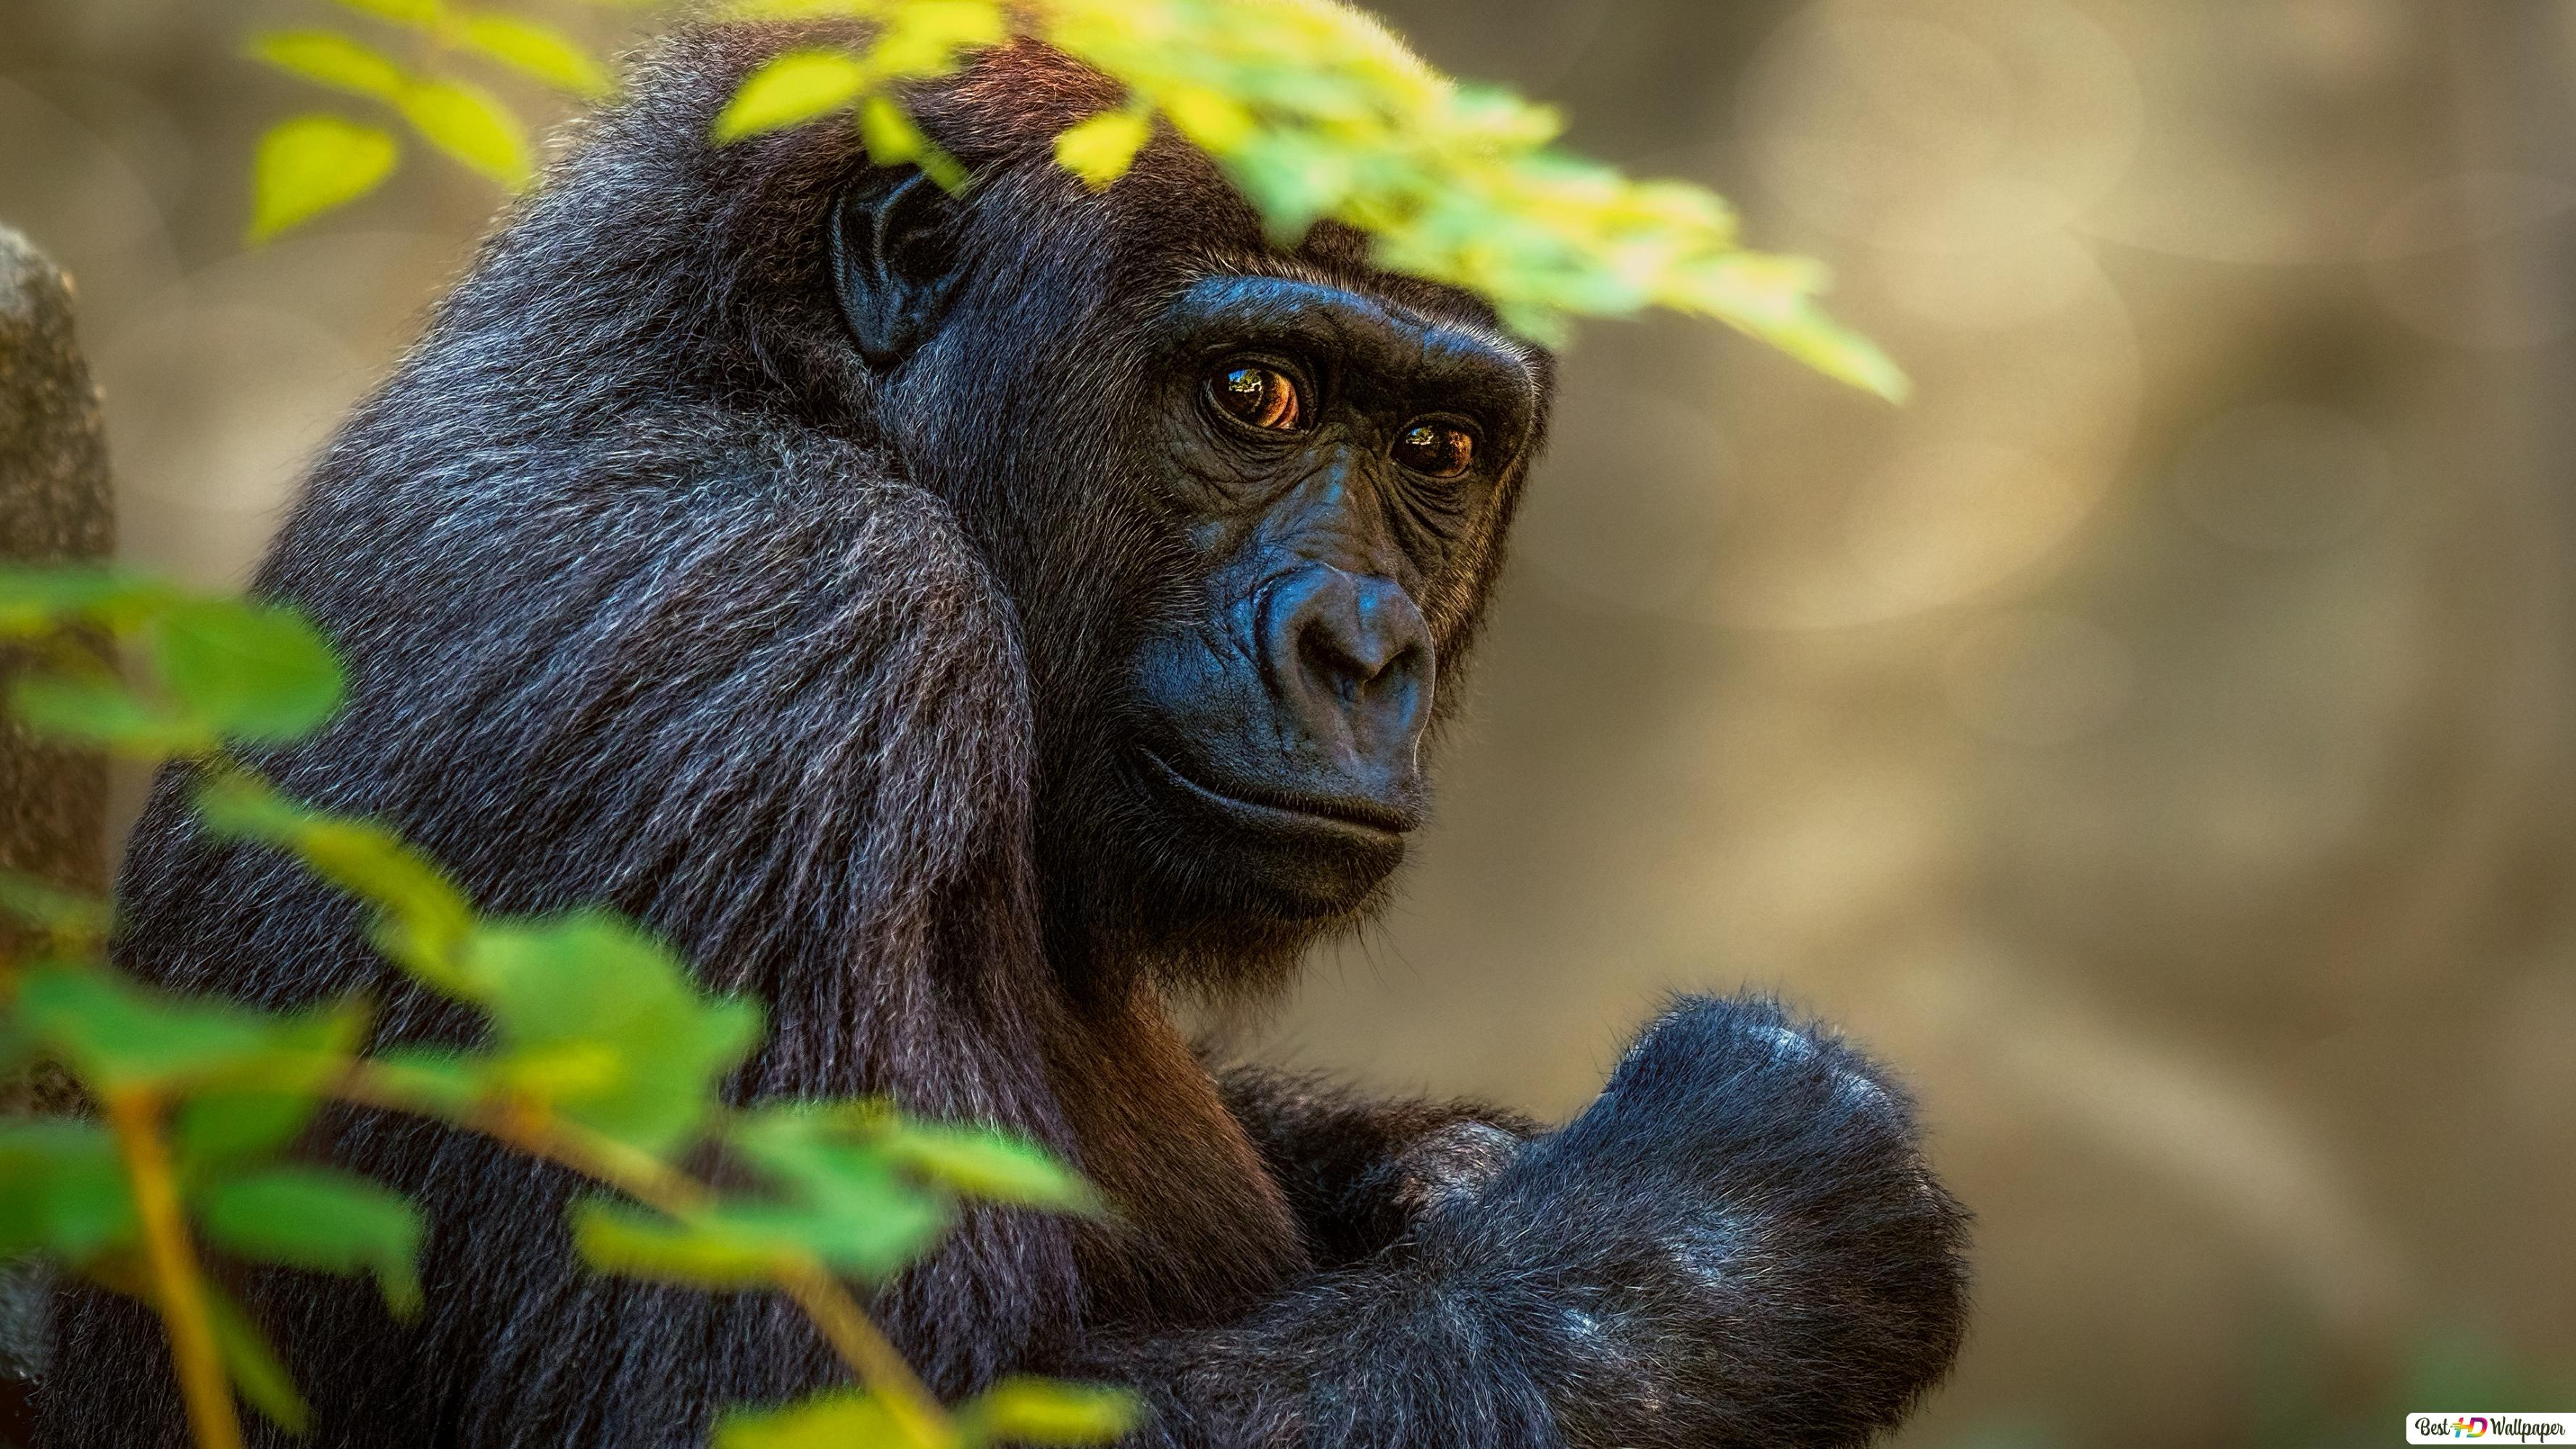 Gorilla Hd Wallpaper Download